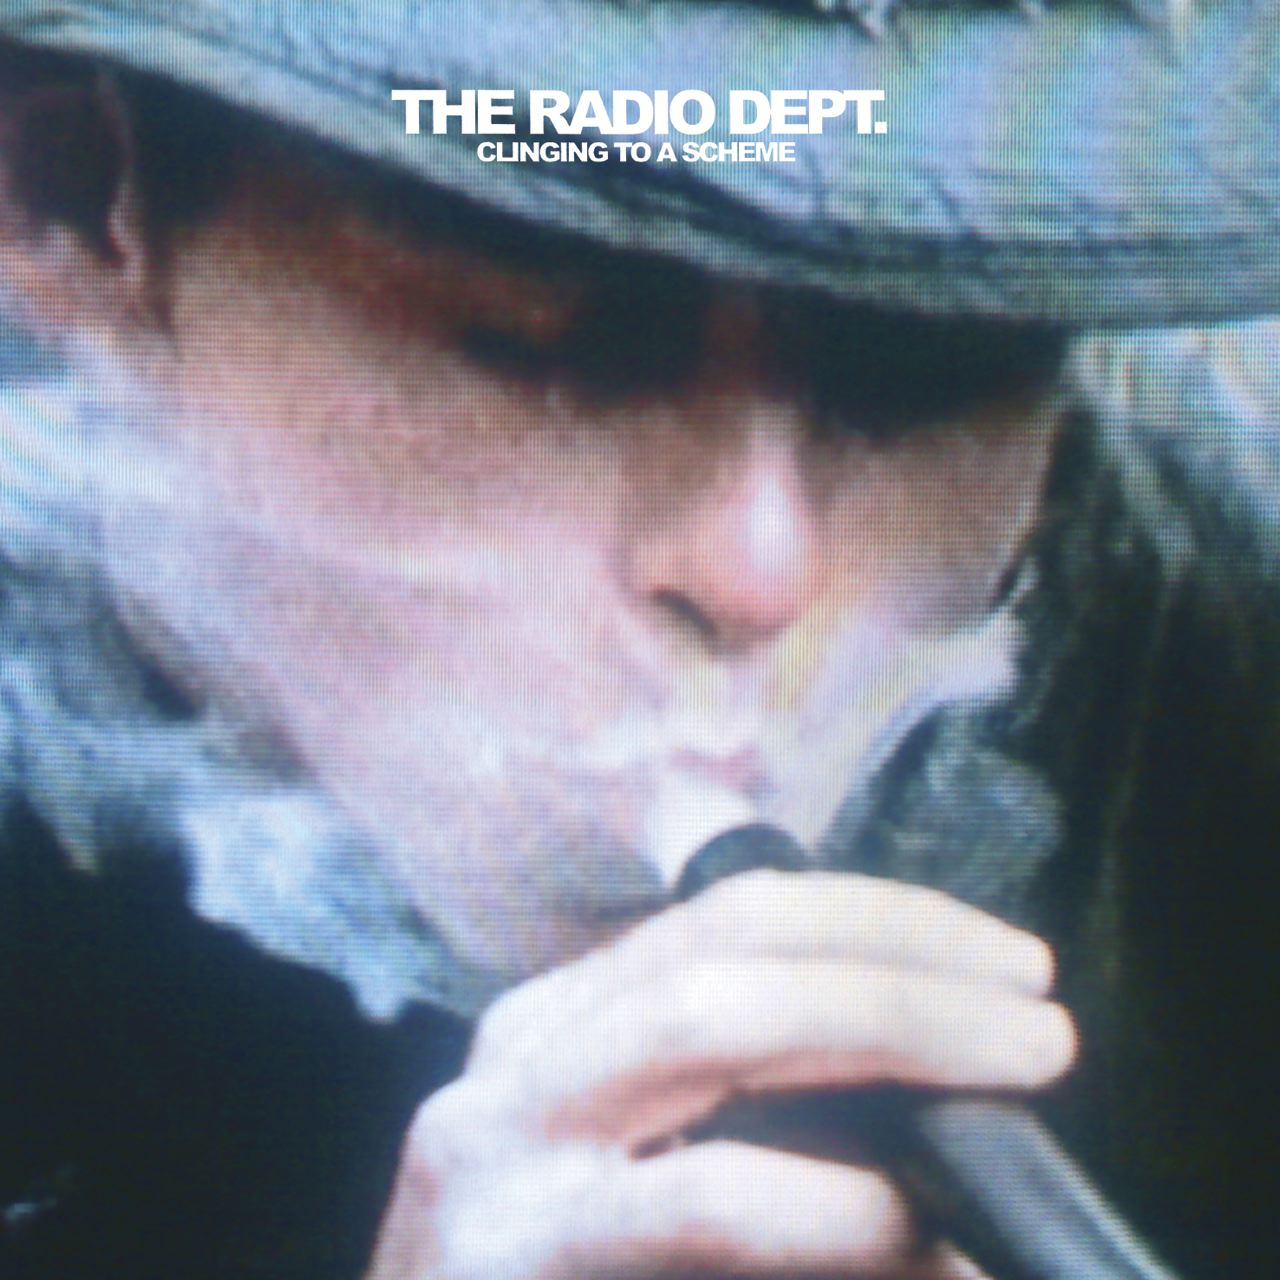 The Radio Dept. Clinging To A Scheme